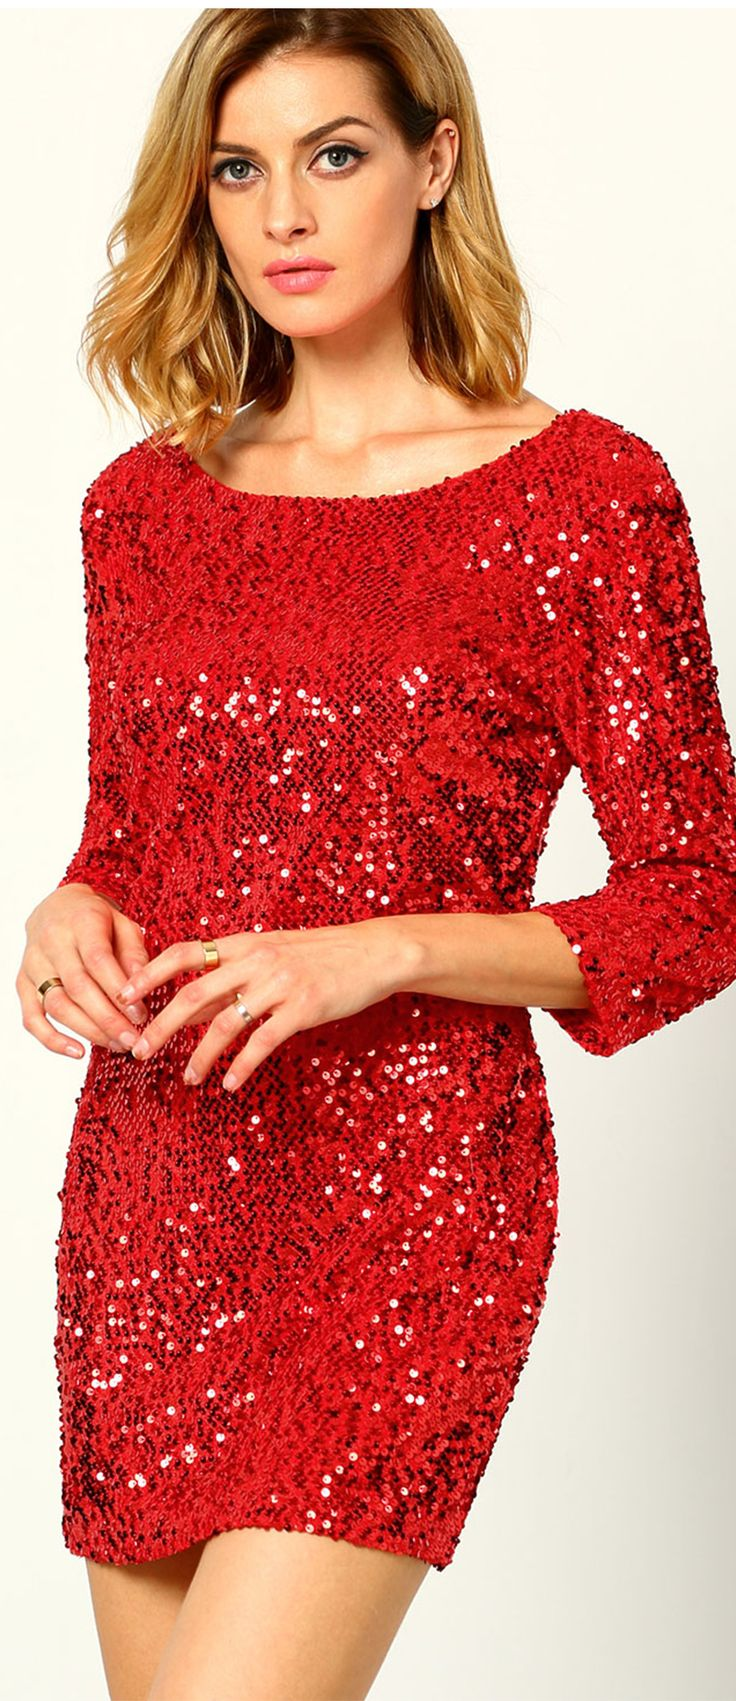 Bandage bodycon dresses 0 celebrities 1639 get lucky extra 50 0 - Red Round Neck Sequined Bodycon Dress